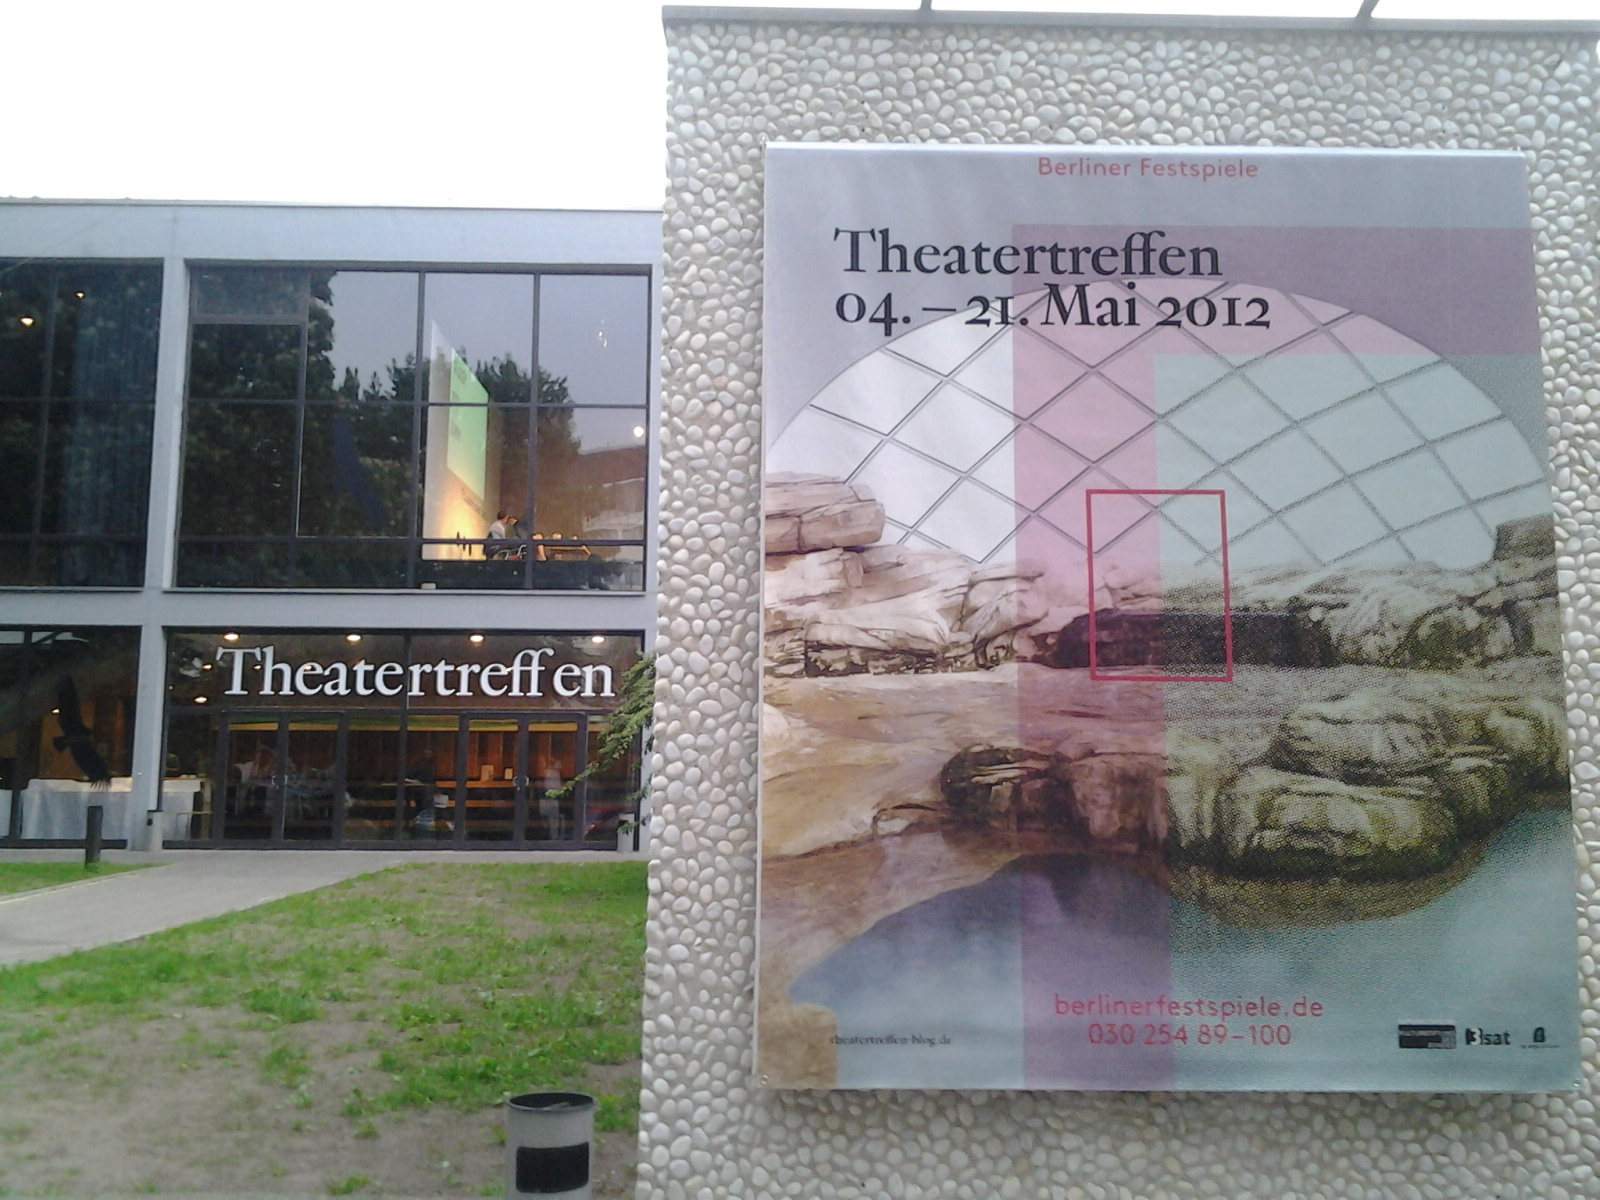 theatertreffen-2012.jpg